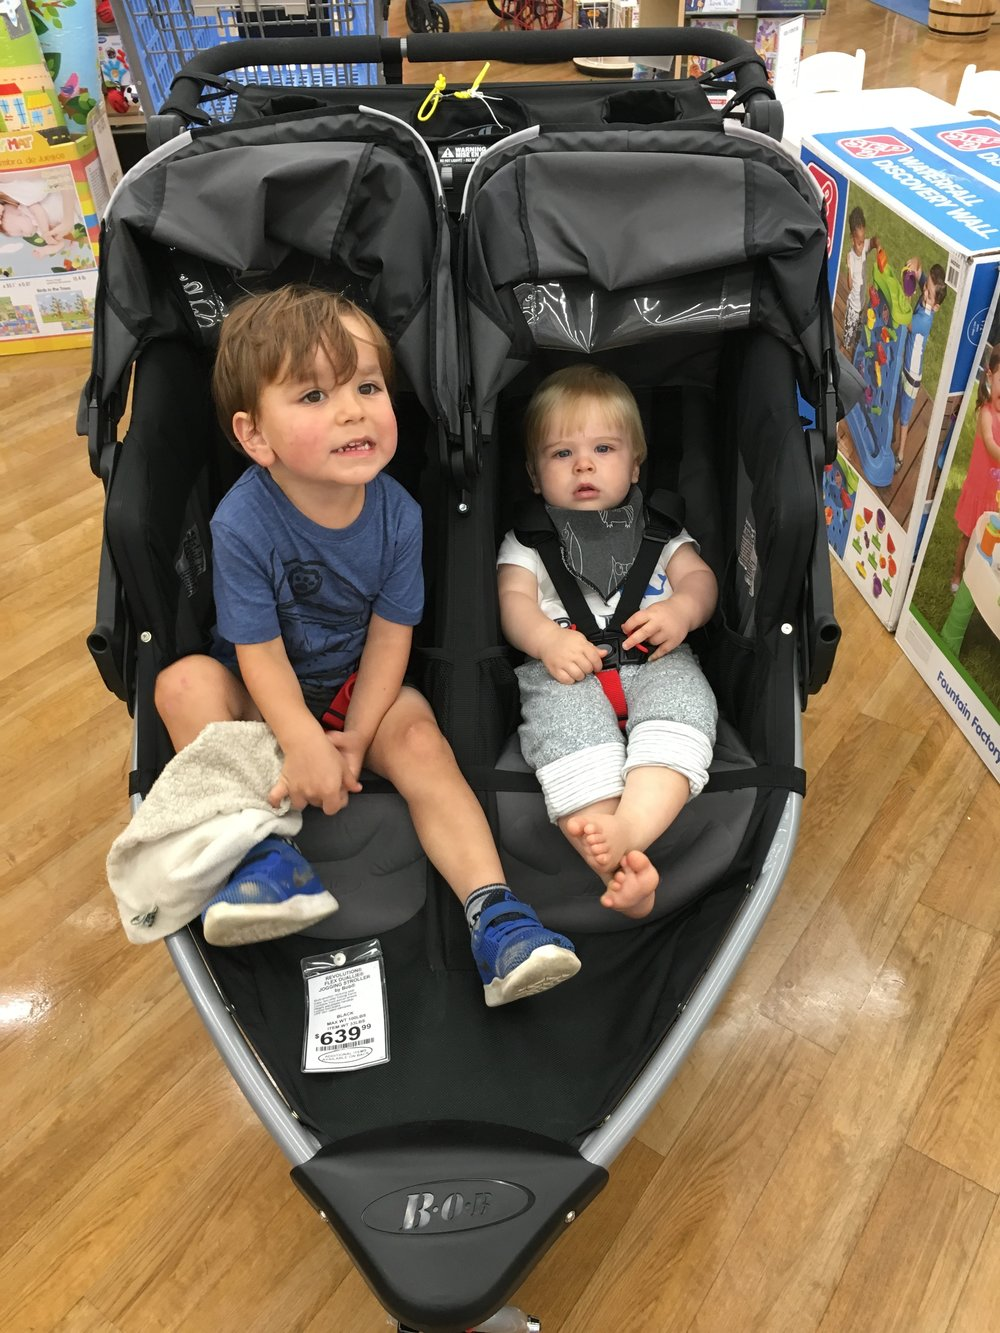 Testing the BOB Double stroller out in store. They look thrilled! Ha!